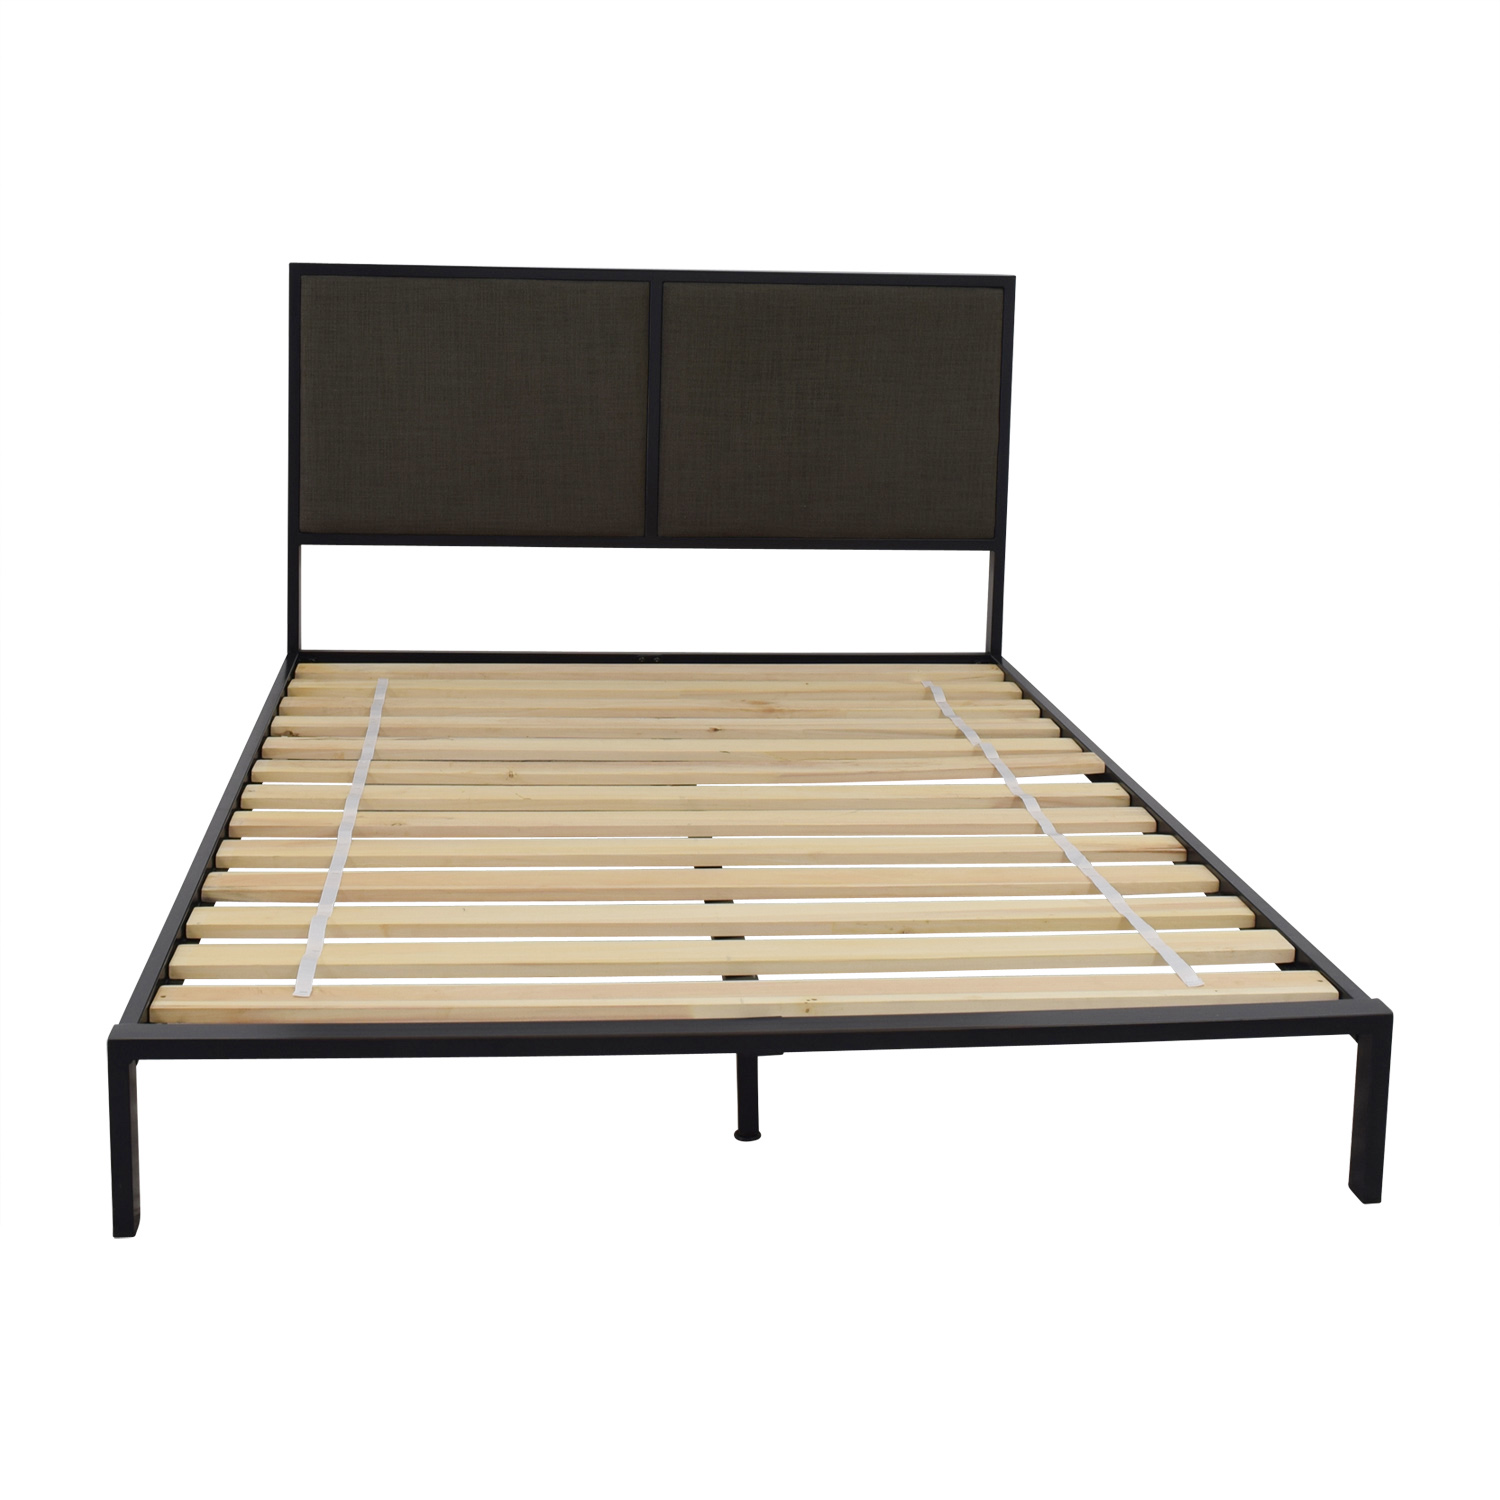 Crate & Barrel Oliver Full Platform Bed Frame sale